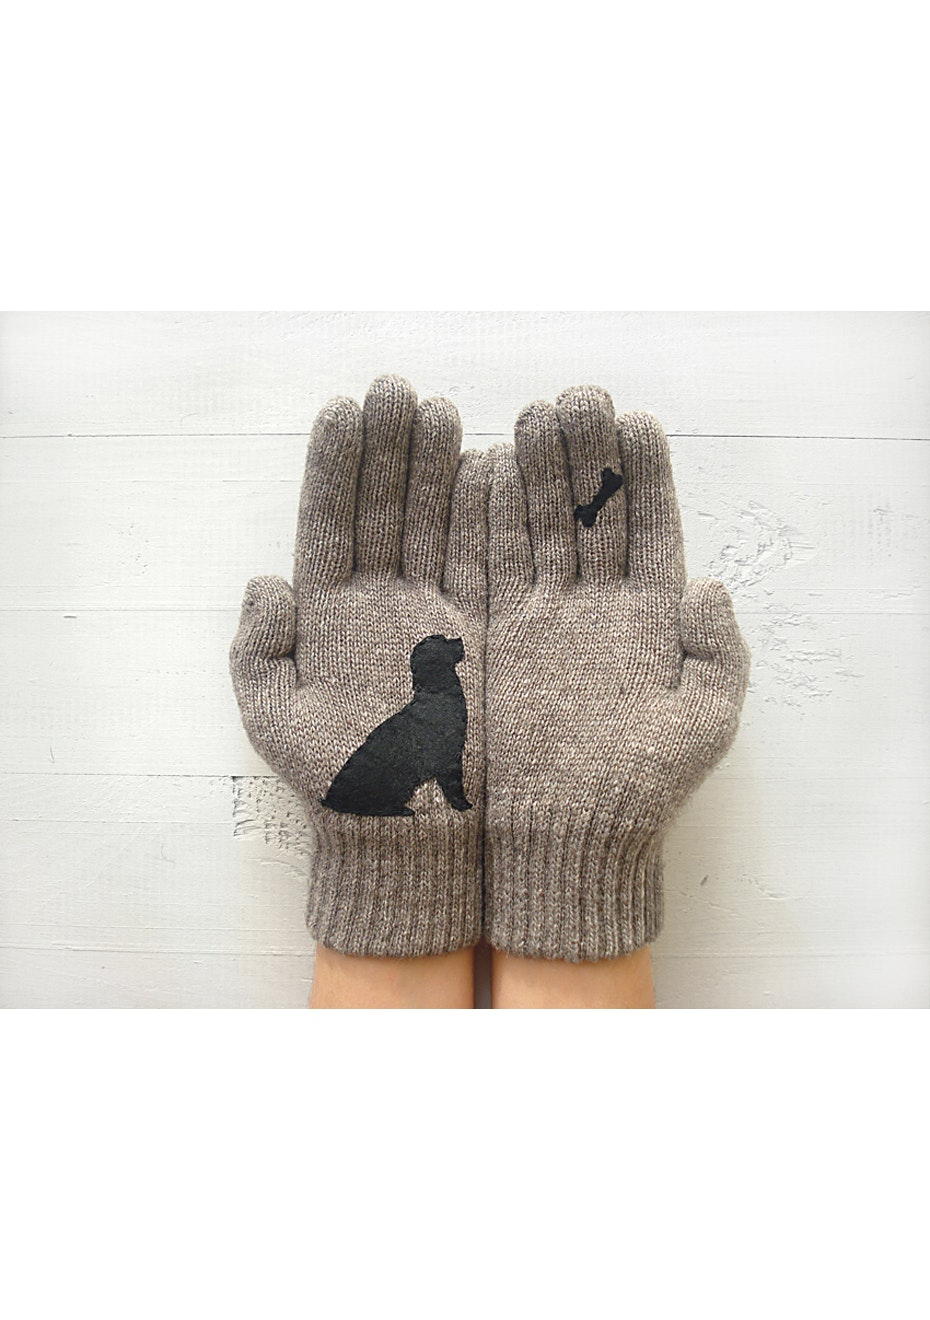 Dog & Bone Gloves - Taupe/Black